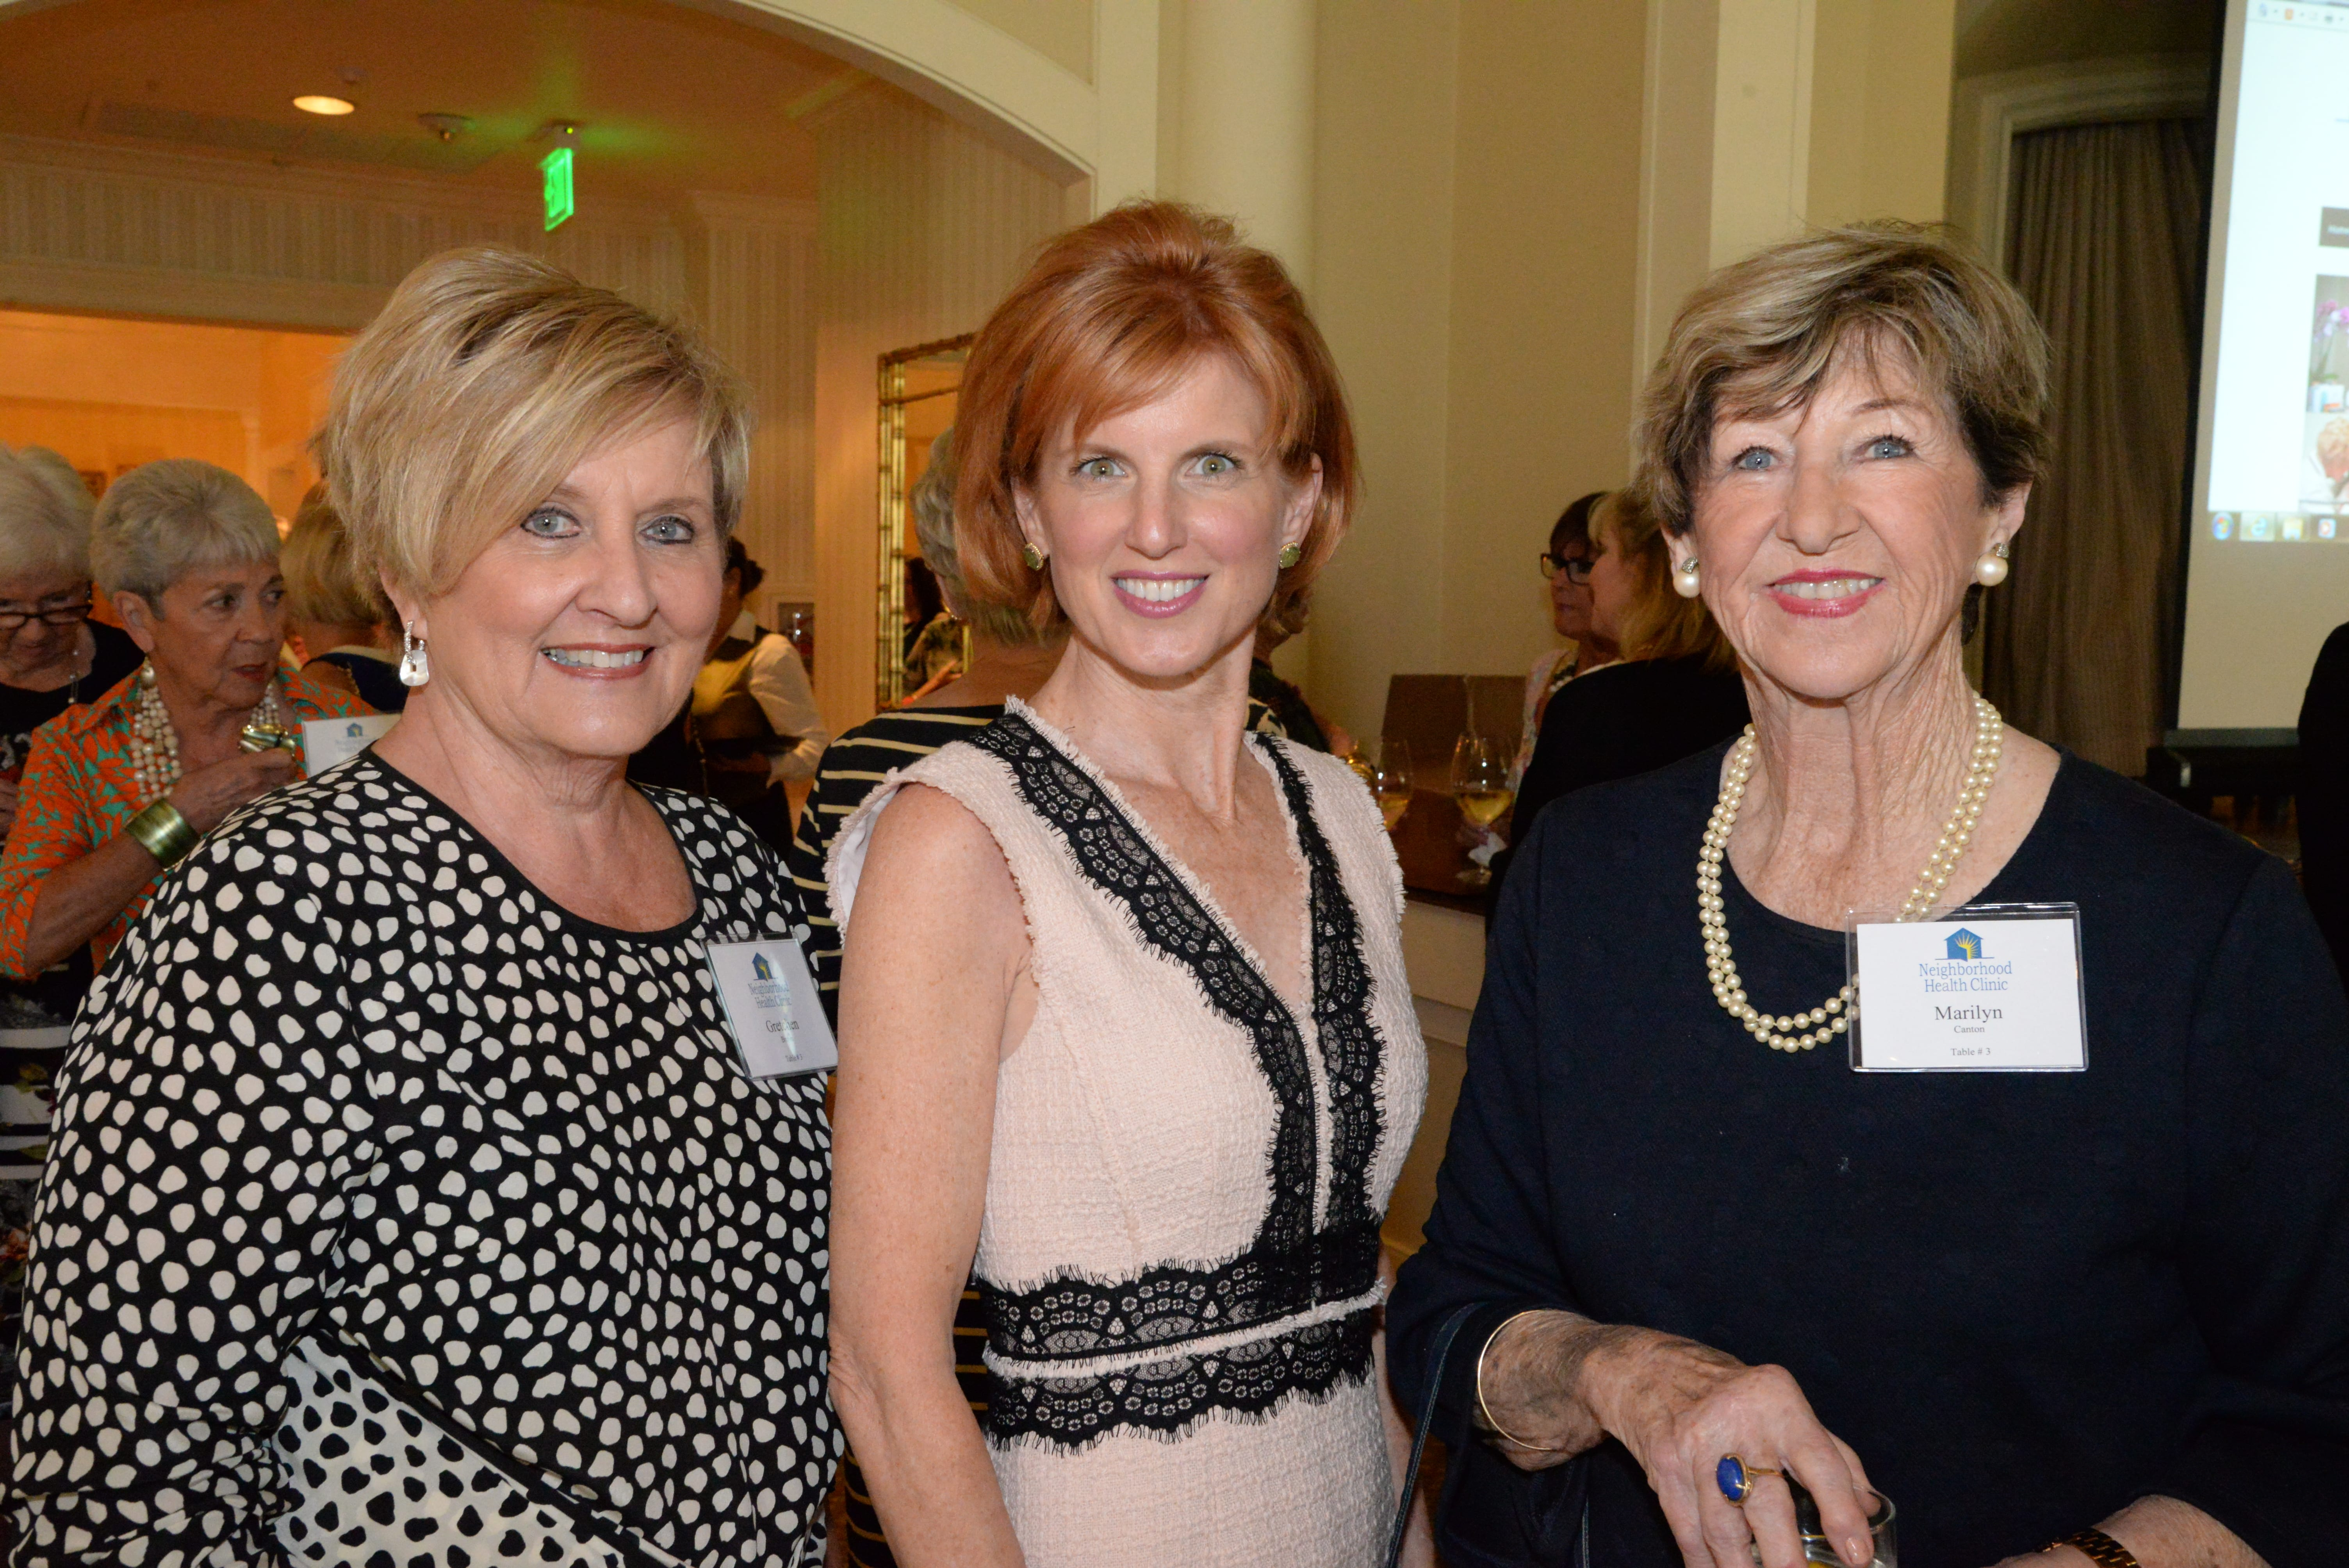 Gretchen Brown, Tracy Nolan, Marilyn Canton